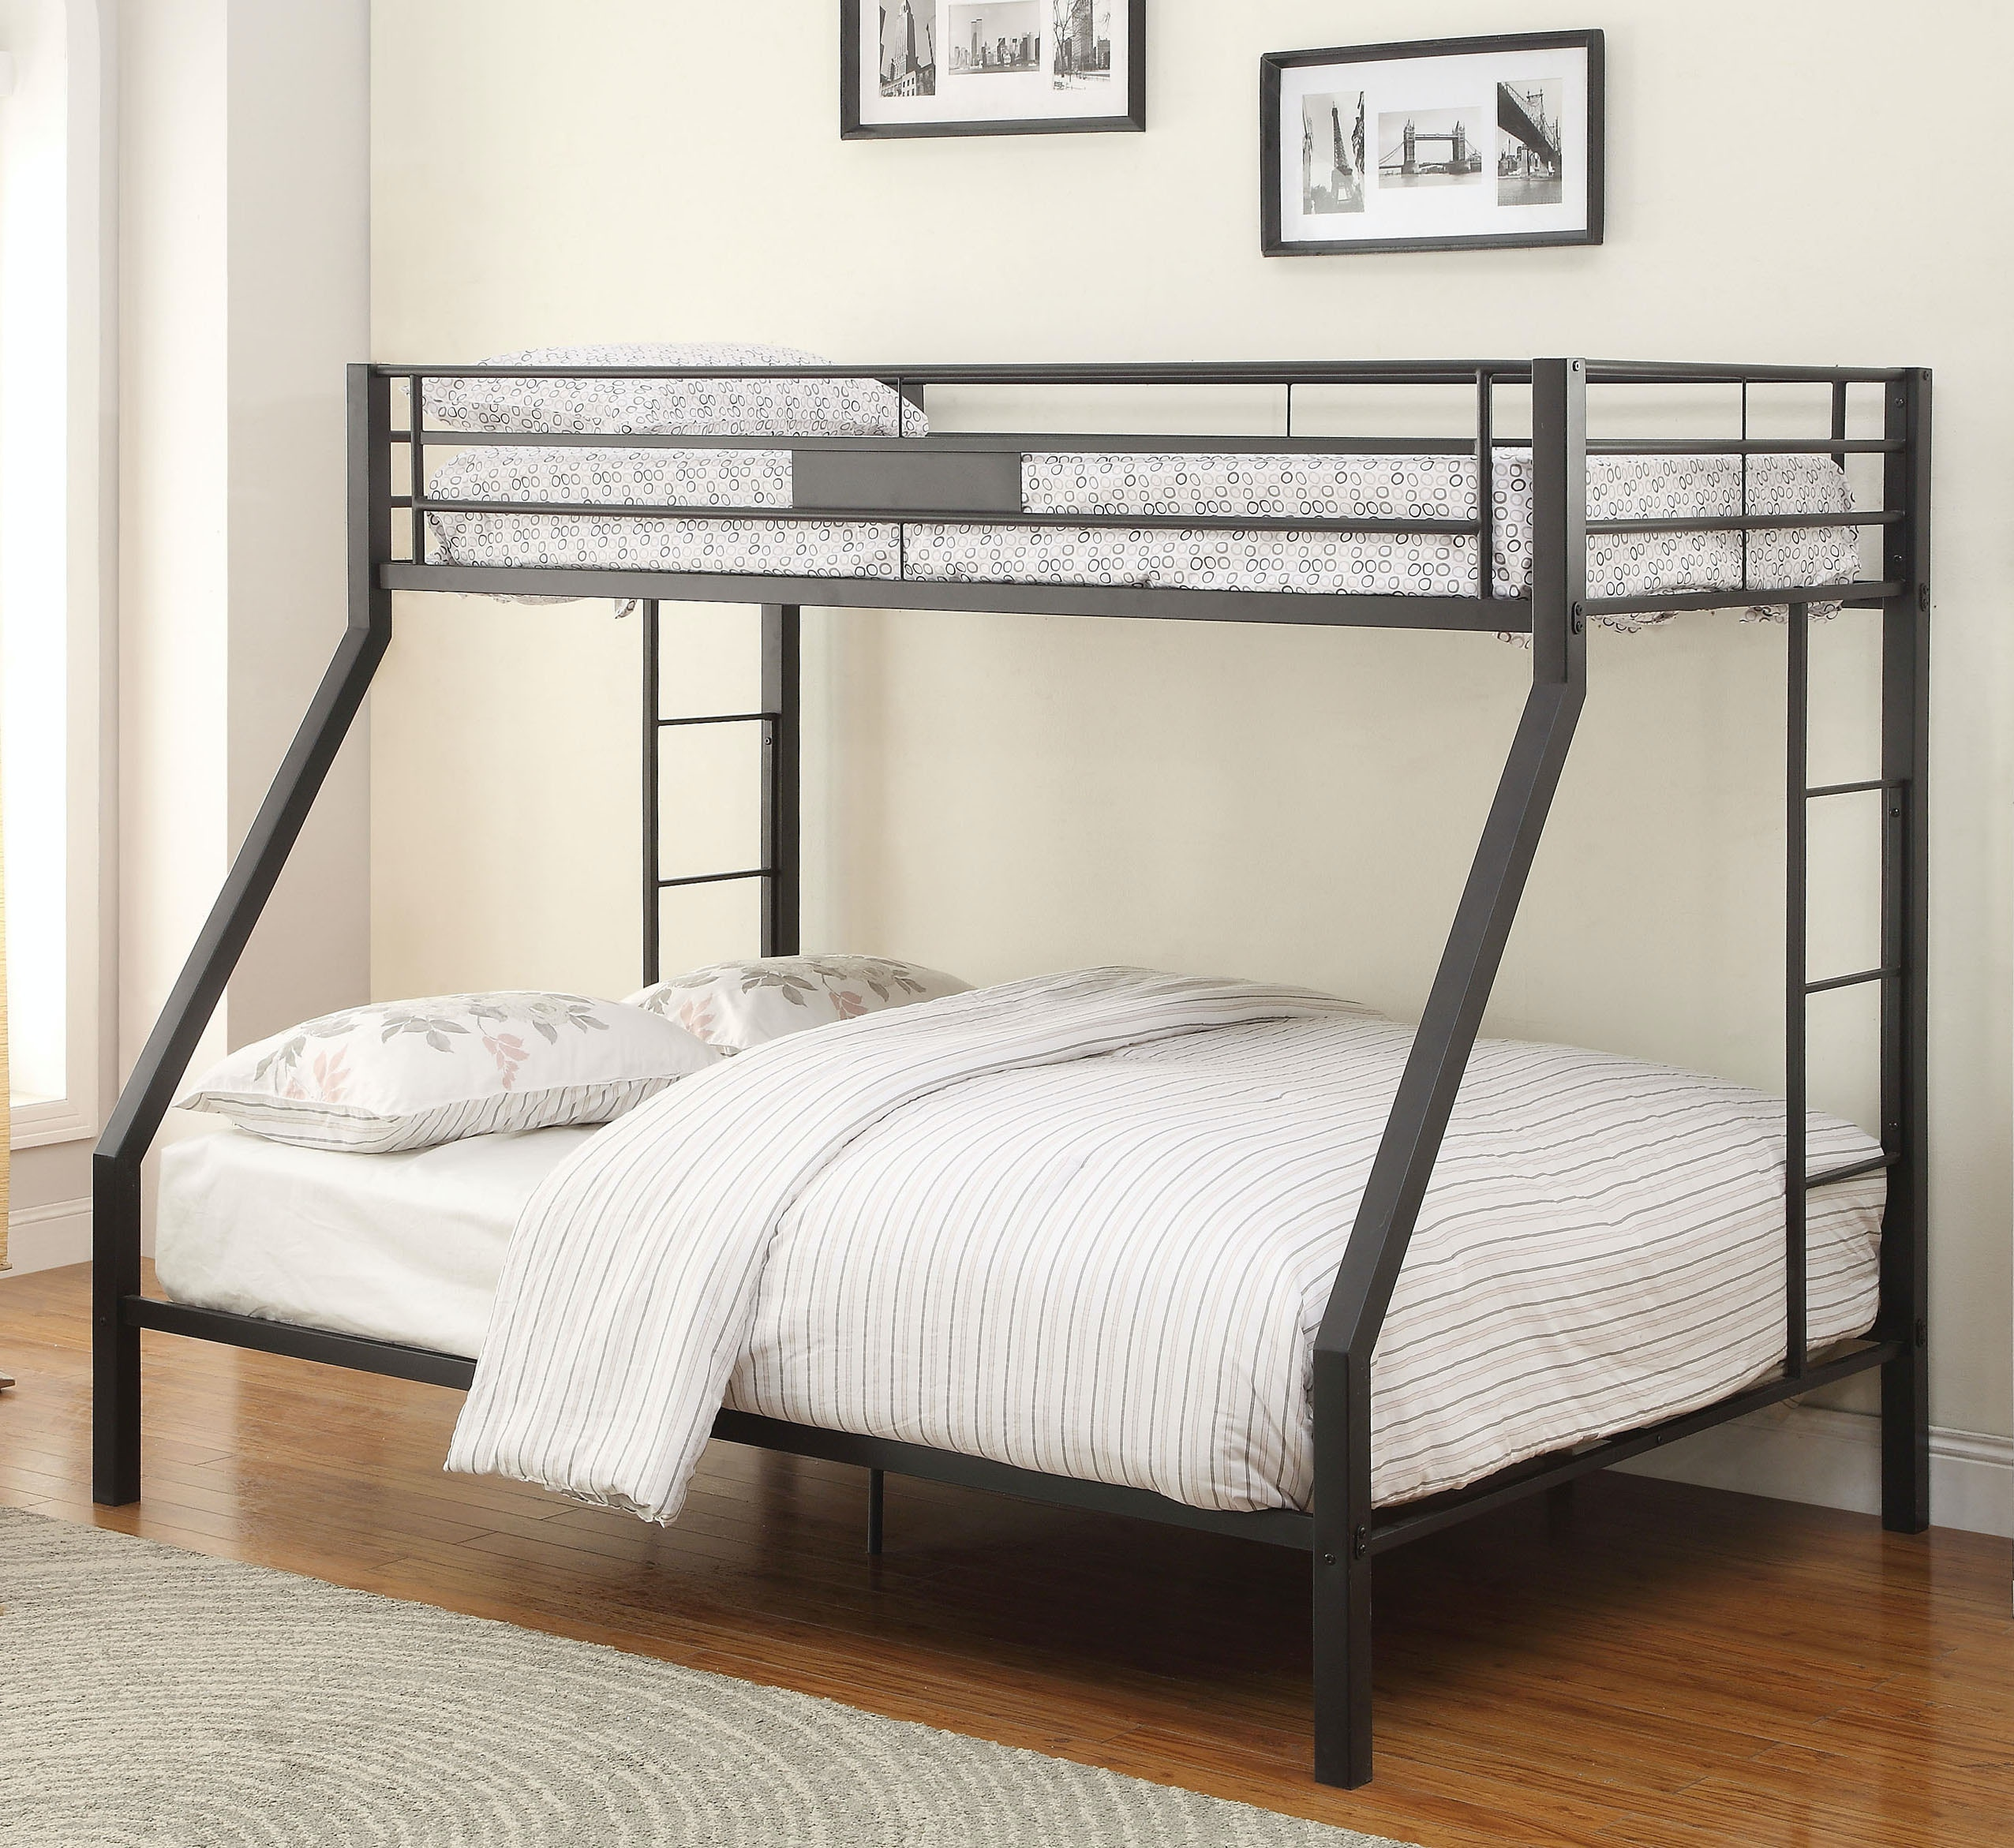 Acme Furniture Youth Limbra Twin Xl Over Queen Bunk Bed 38000 Hi